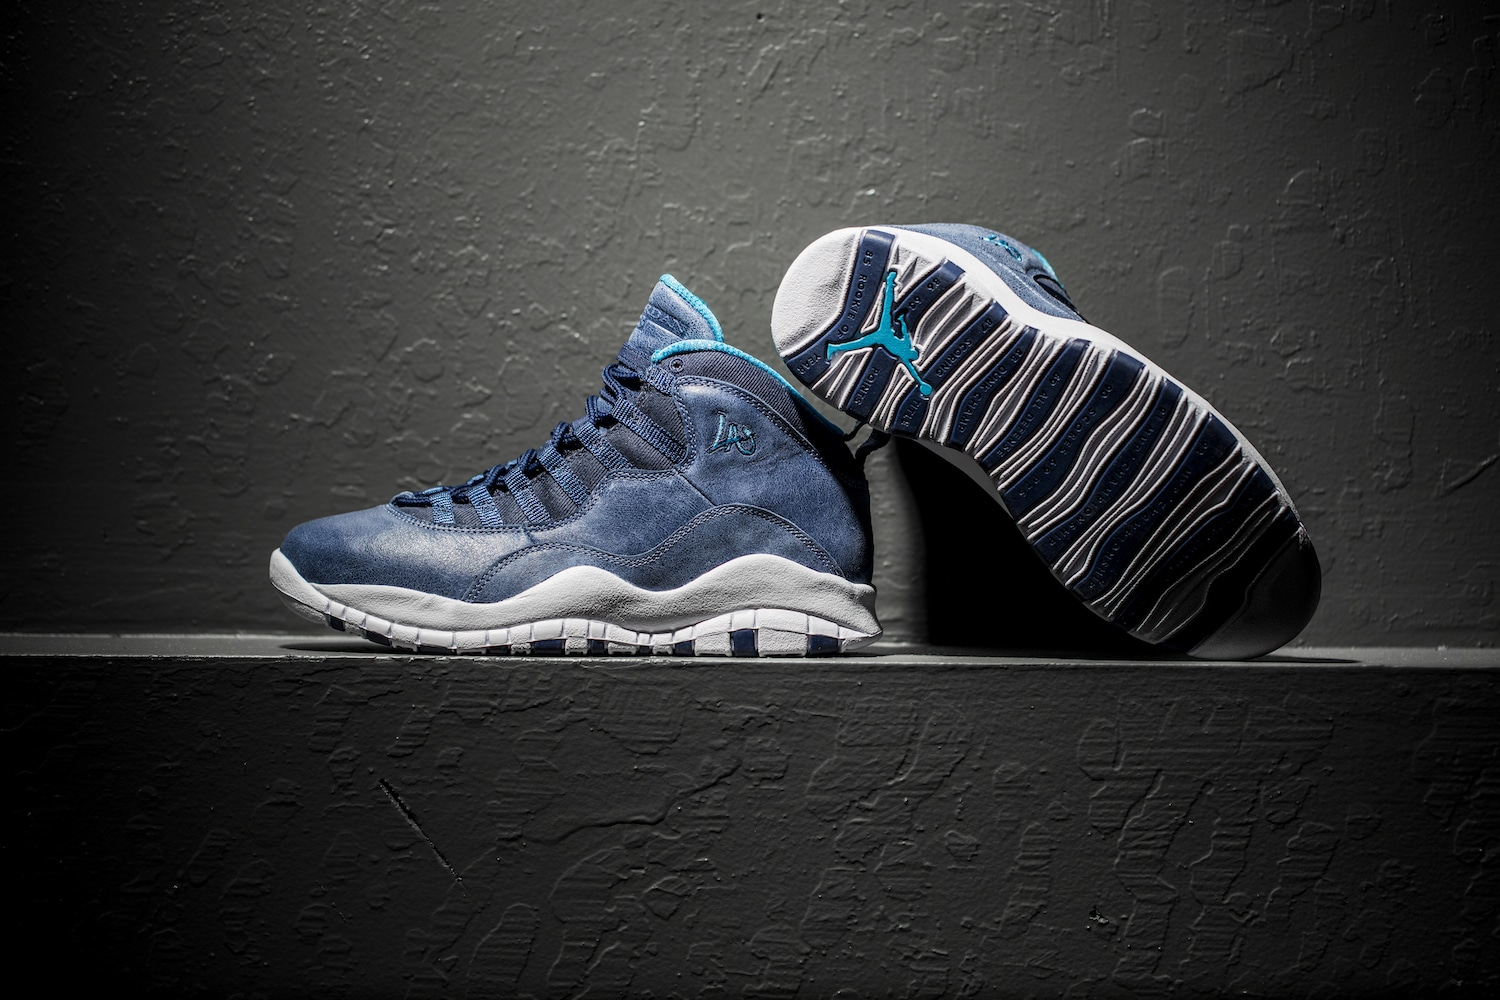 Air jordan 10 los angeles 7